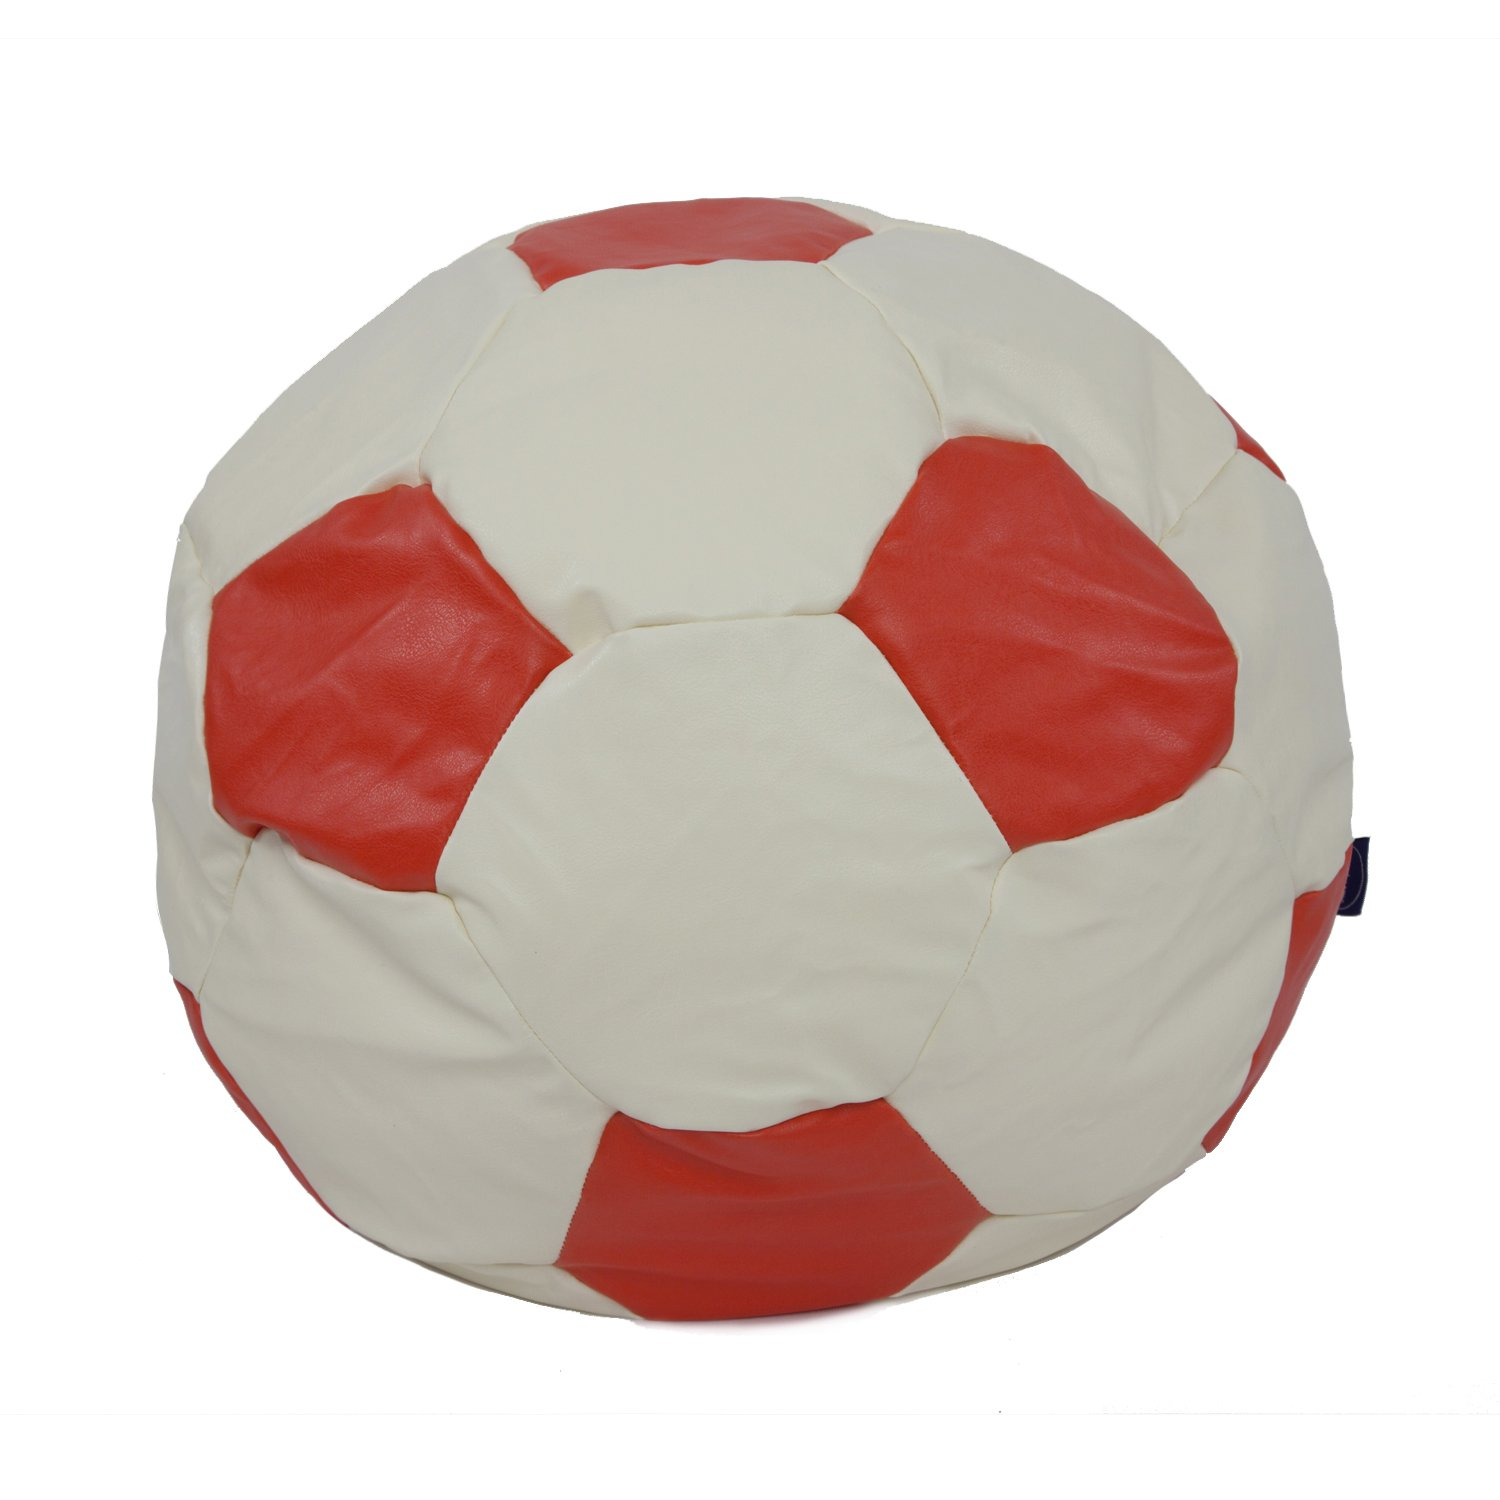 Faux Leather Football Design Bean Bag available in a choice of colour and size (Small 50 cm2, Black and Cream) Betterdreams